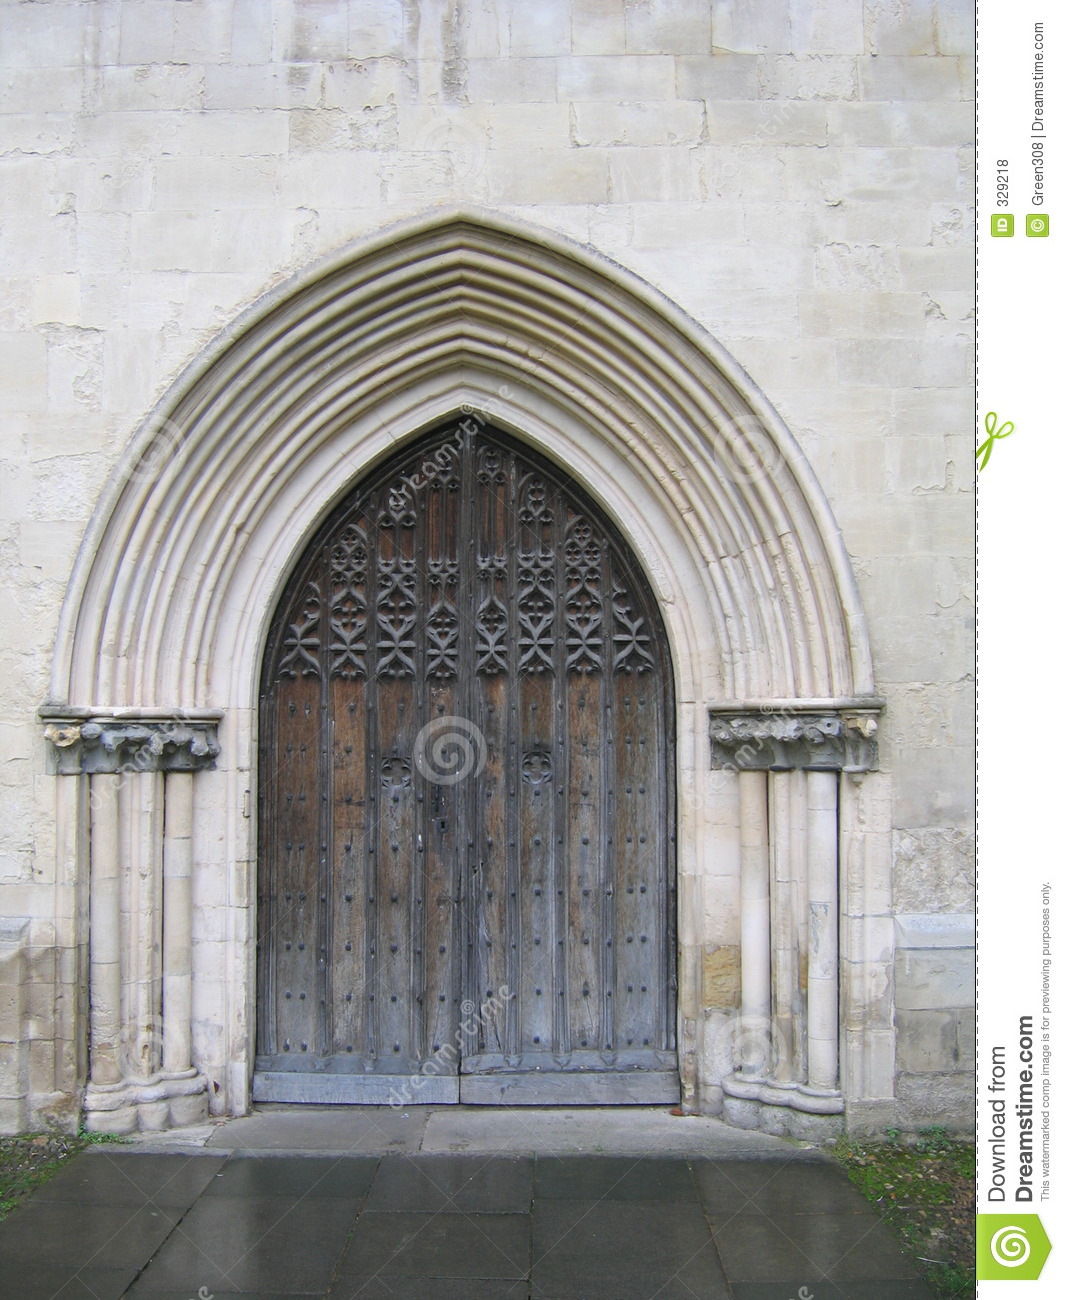 Open church door clipart - Church Door